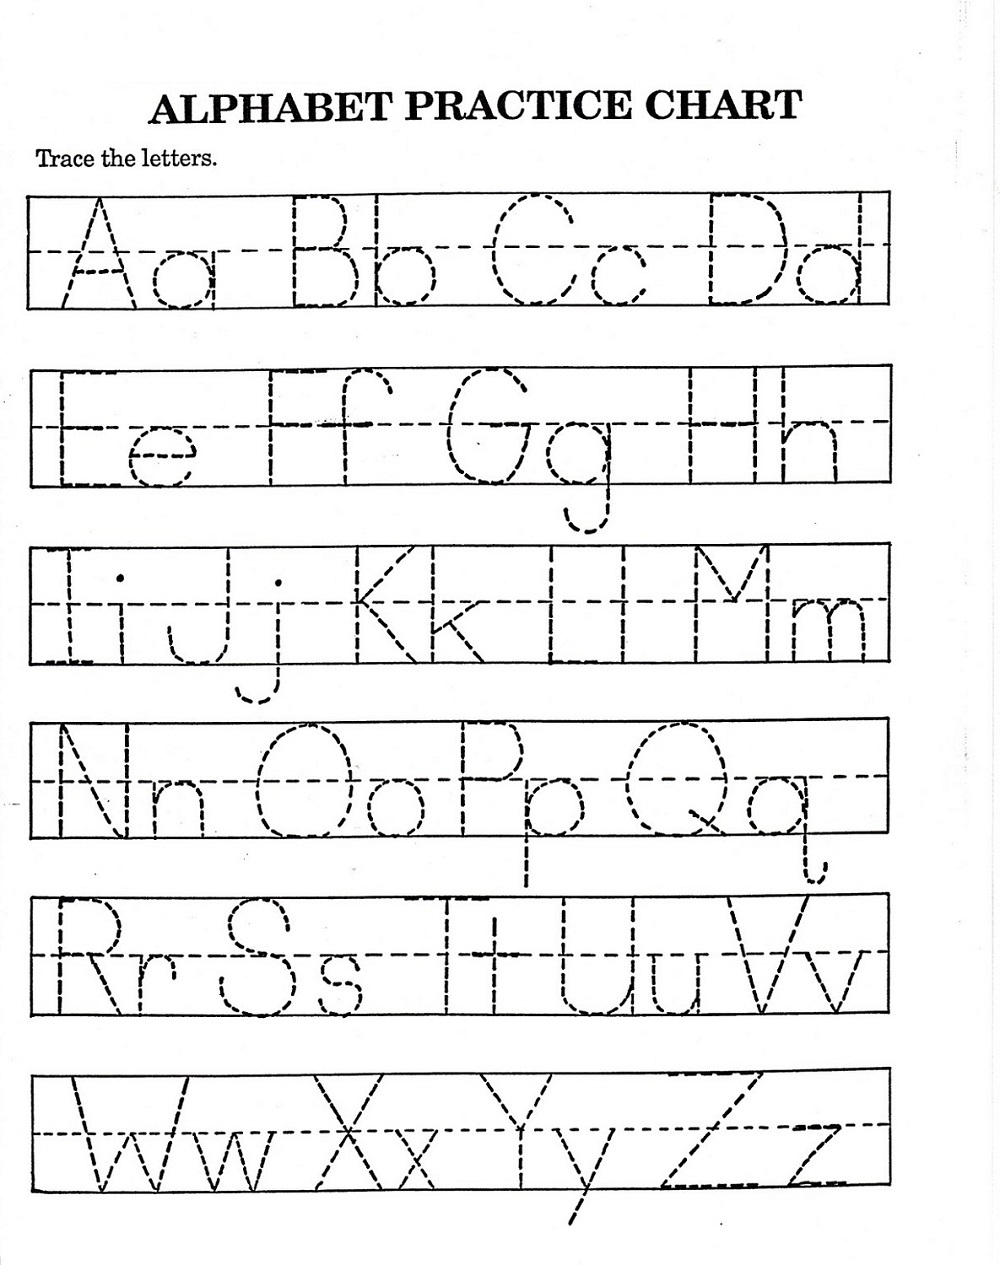 Traceable Alphabet Worksheets A-Z | Activity Shelter intended for Letter Worksheets A-Z